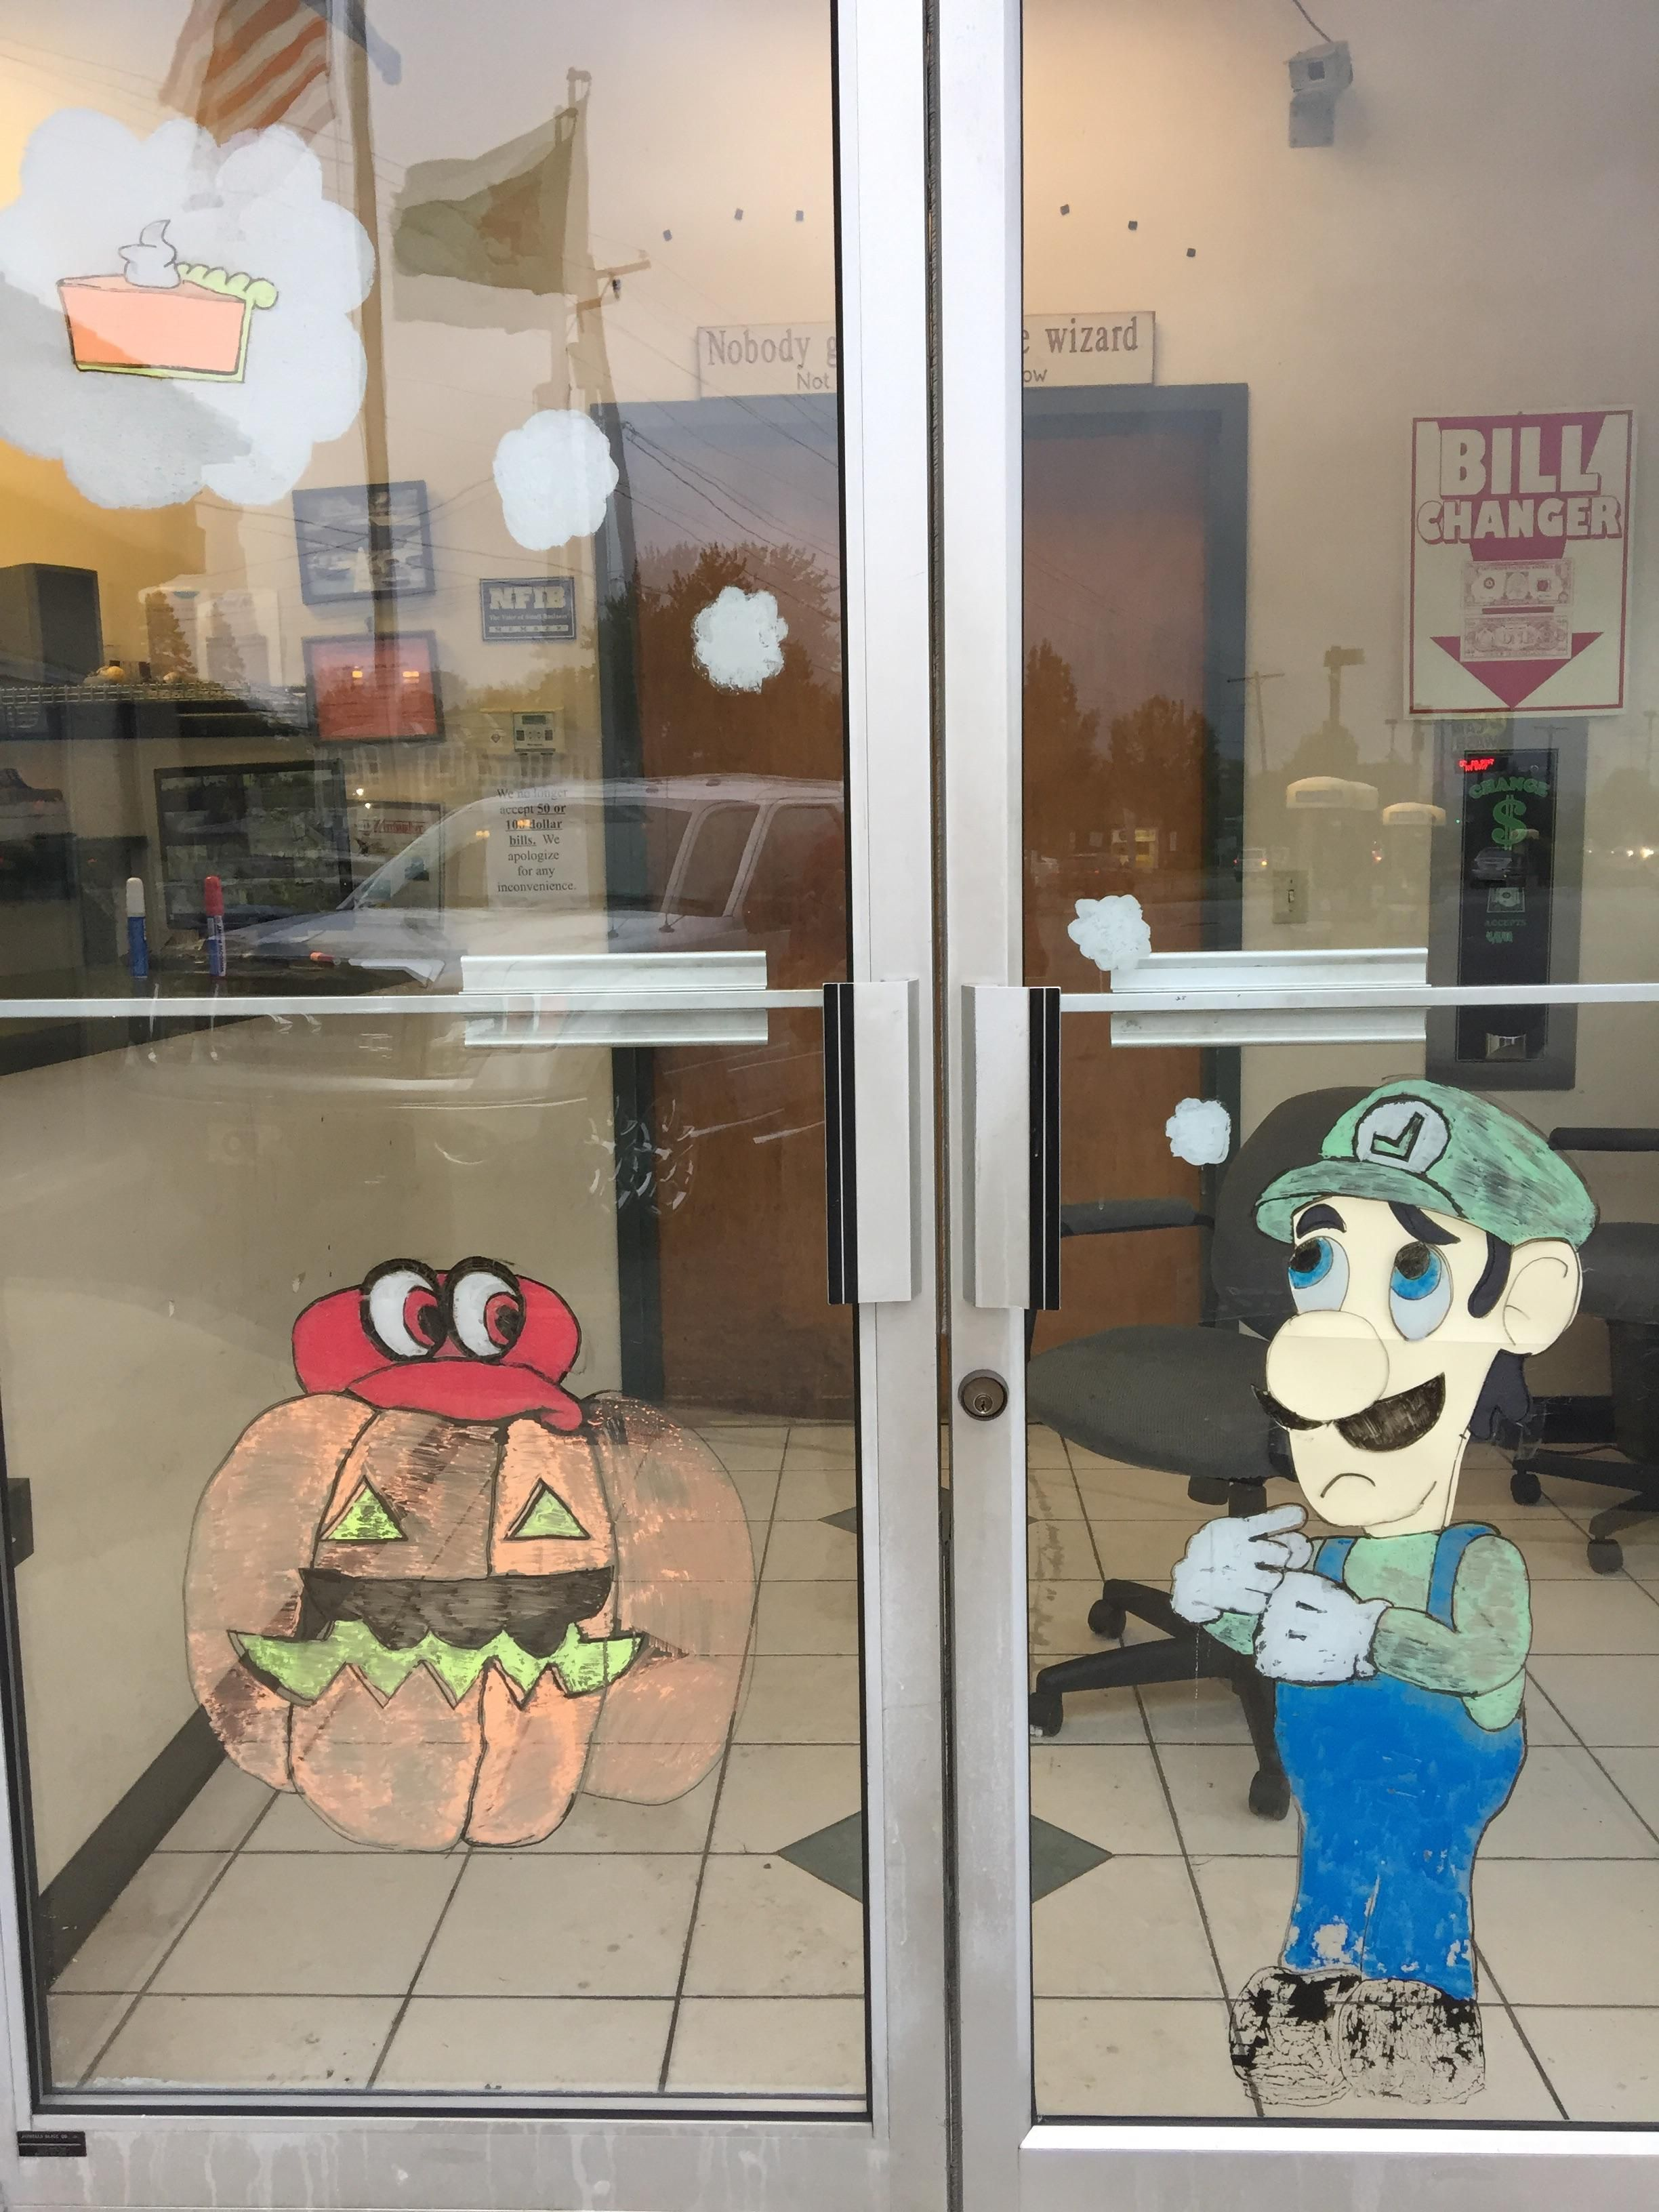 I got to do the window art at work for Halloween. http://bit.ly/2lnzap3 #nintendo